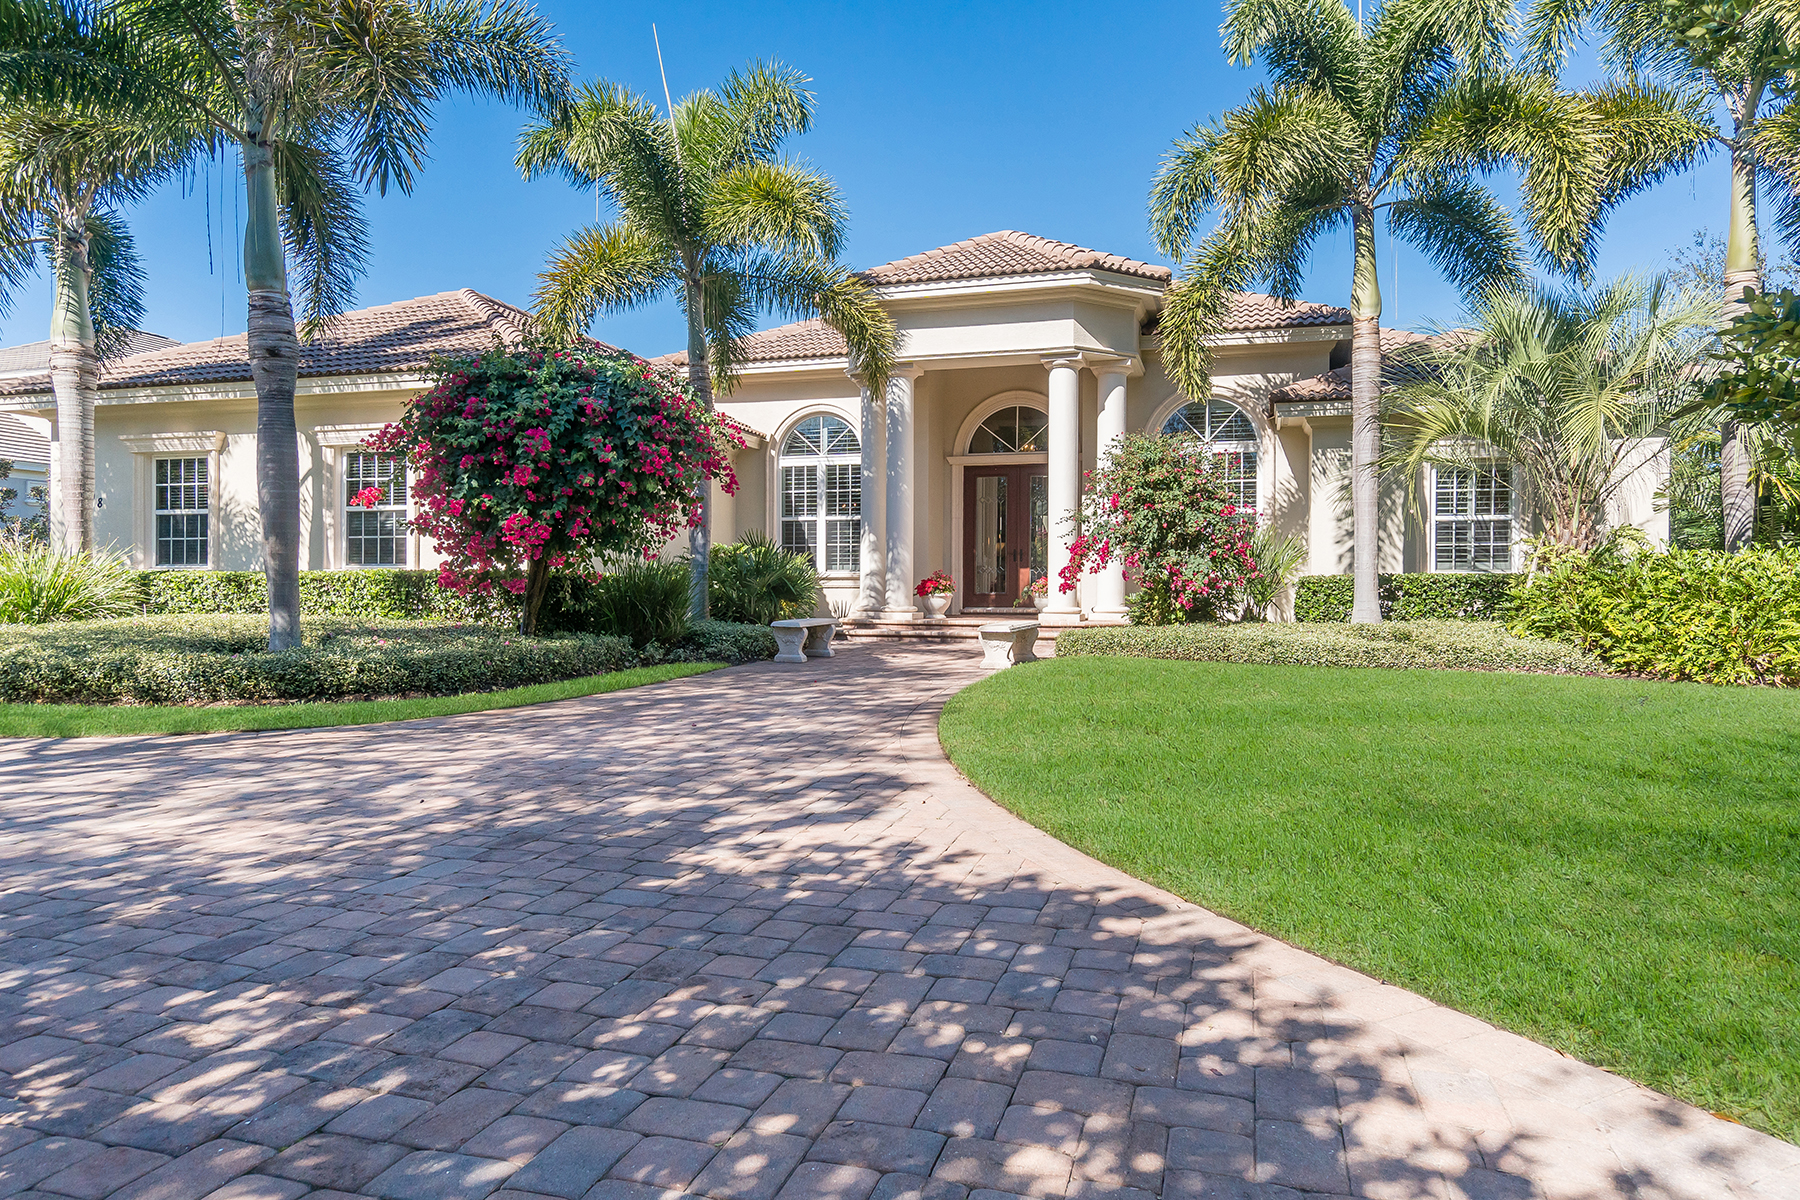 Single Family Home for Sale at 4008 Founders Club Dr , Sarasota, FL 34240 4008 Founders Club Dr, Sarasota, Florida, 34240 United States